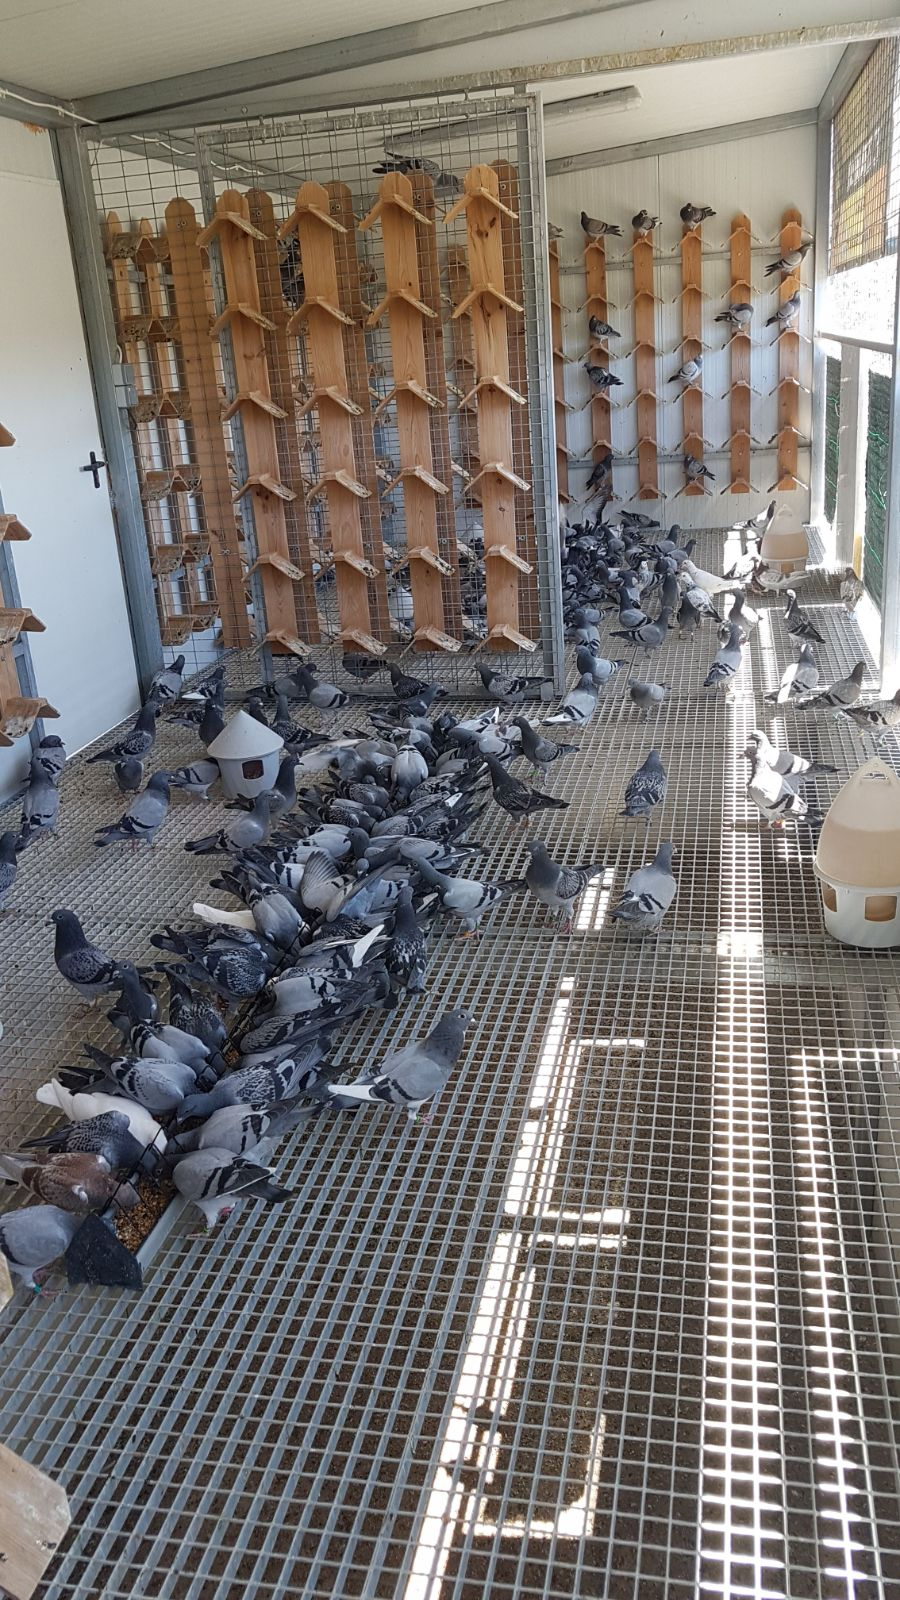 MORE THAN 1,000 PIGEONS IN THE COSTA DEL SOL LOTF PREPARED FOR THE BEST COMPETITION OF THE YEAR